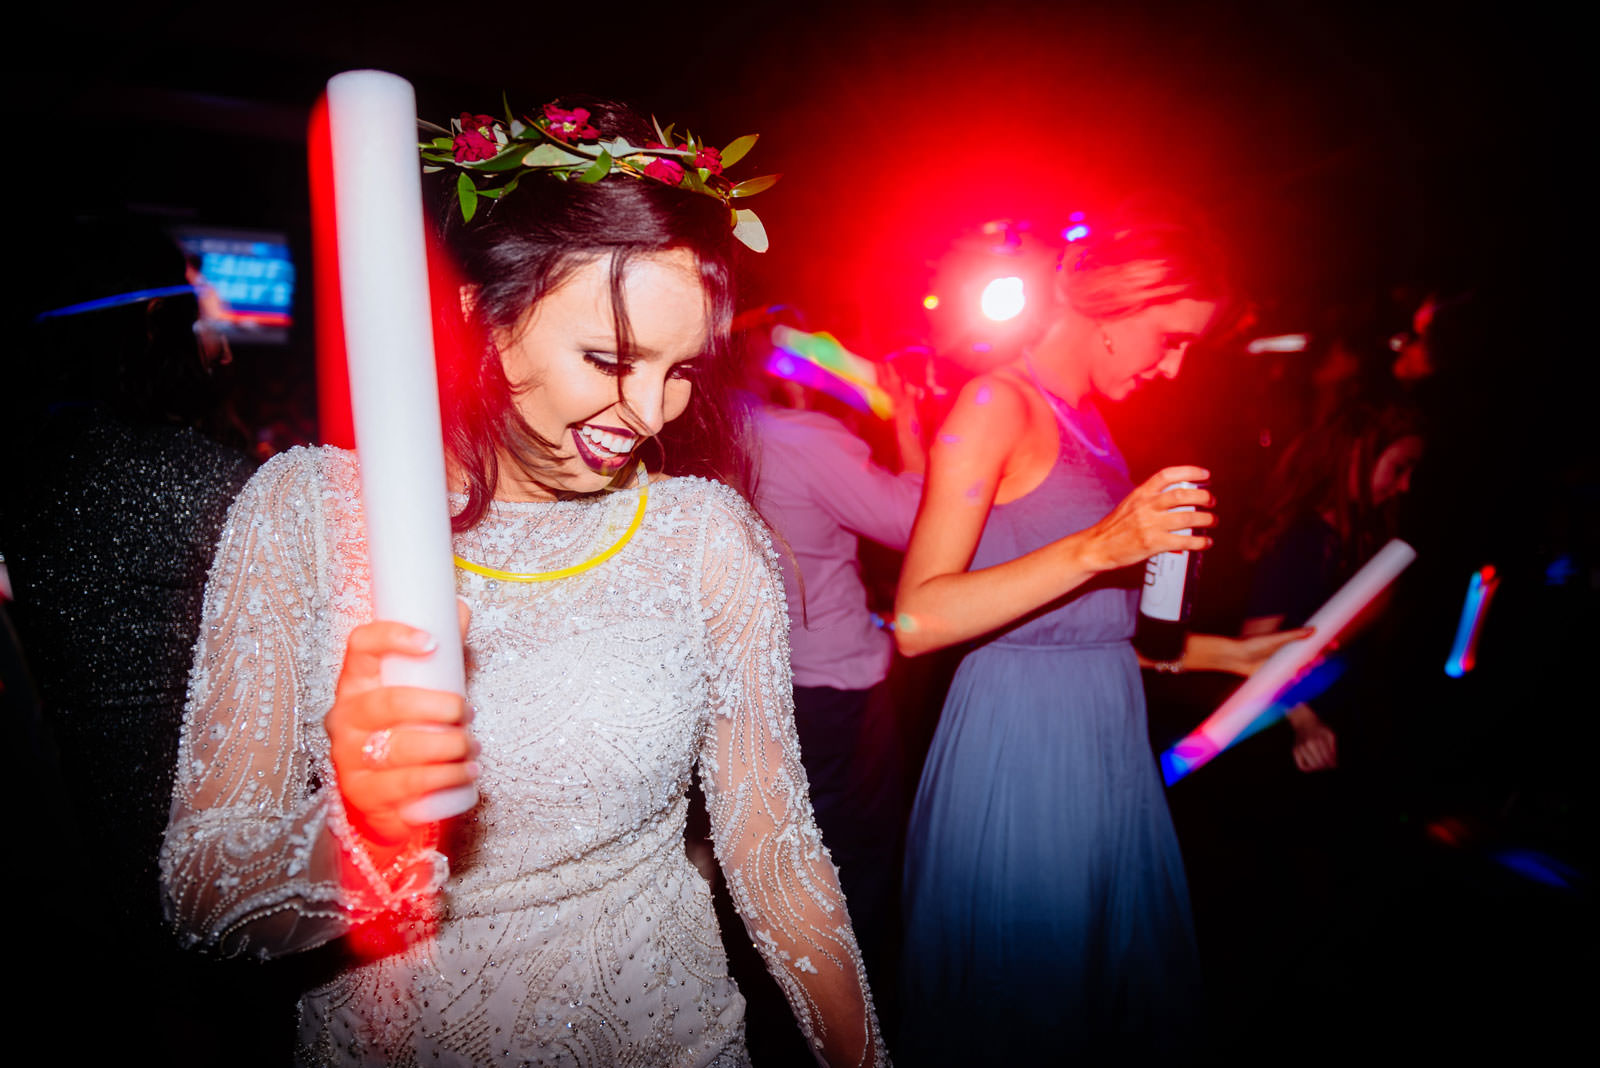 051bride waving glowstick during reception dancing